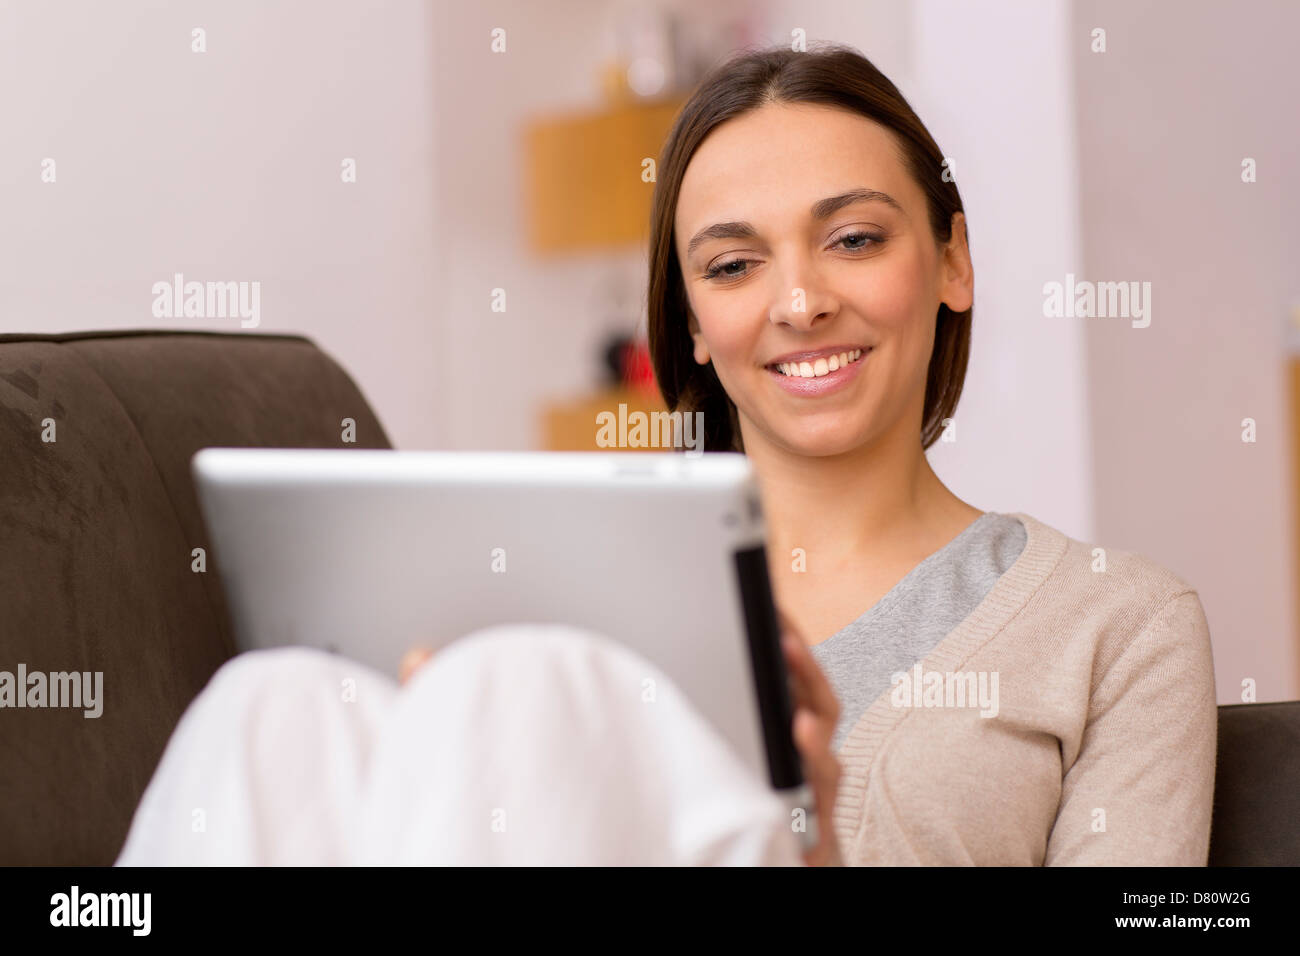 female consults email on pad - Stock Image